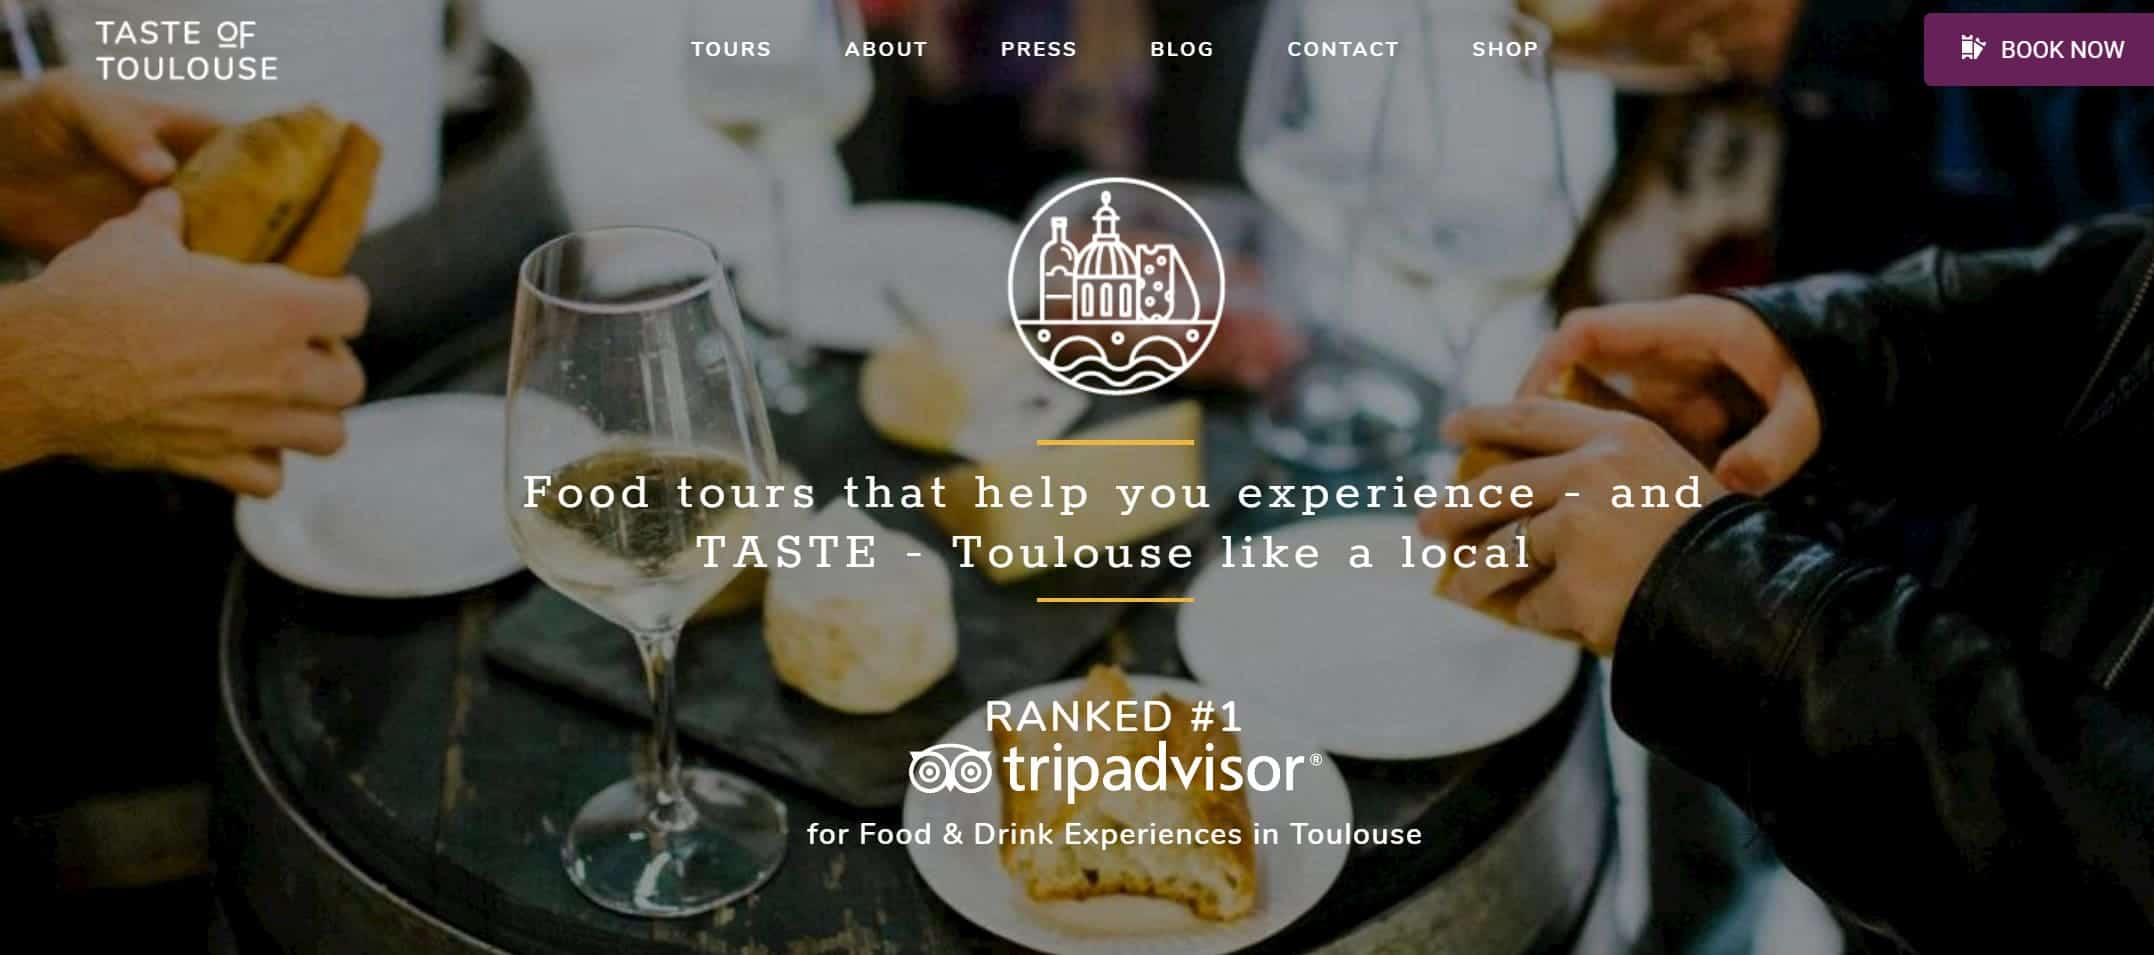 Website image of Taste of toulouse food tour